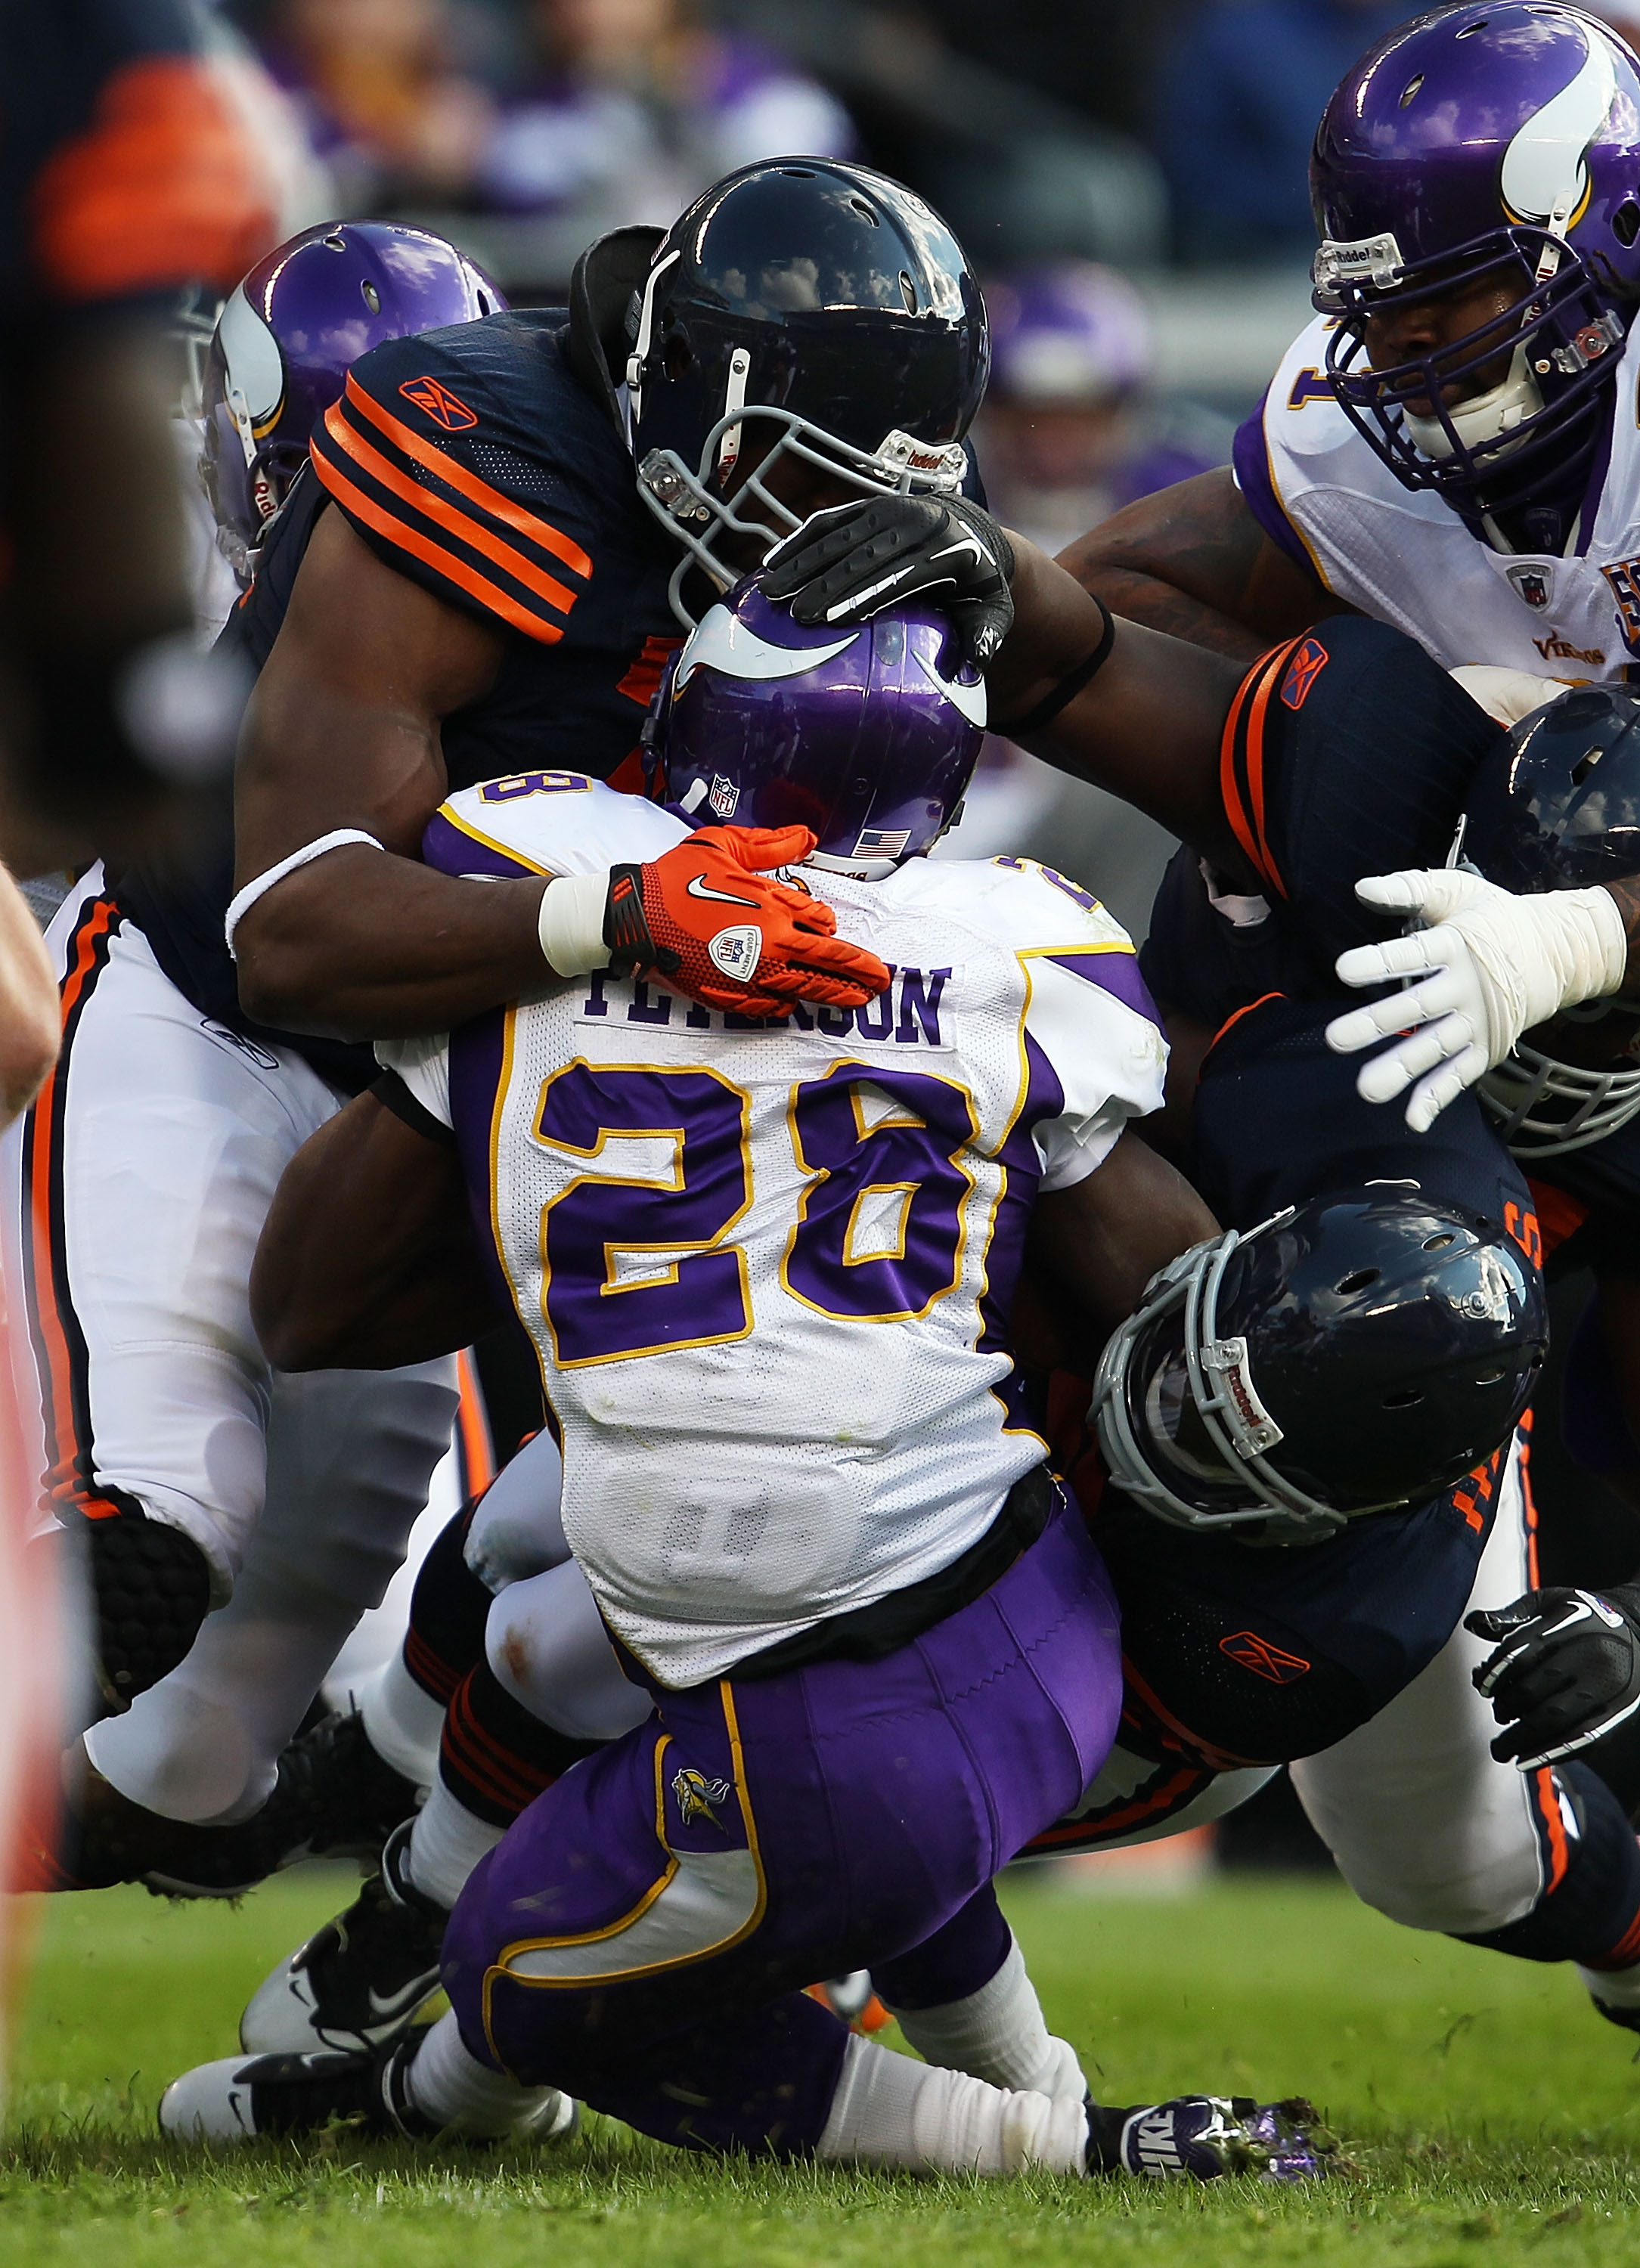 CHICAGO - NOVEMBER 14: Adrian Peterson #28 of the Minnesota Vikings is tackled by members of the Chicago Bear defense including Israel Idonije #71 (L) and Chris Harris #46 at Soldier Field on November 14, 2010 in Chicago, Illinois. The Bears defeated the